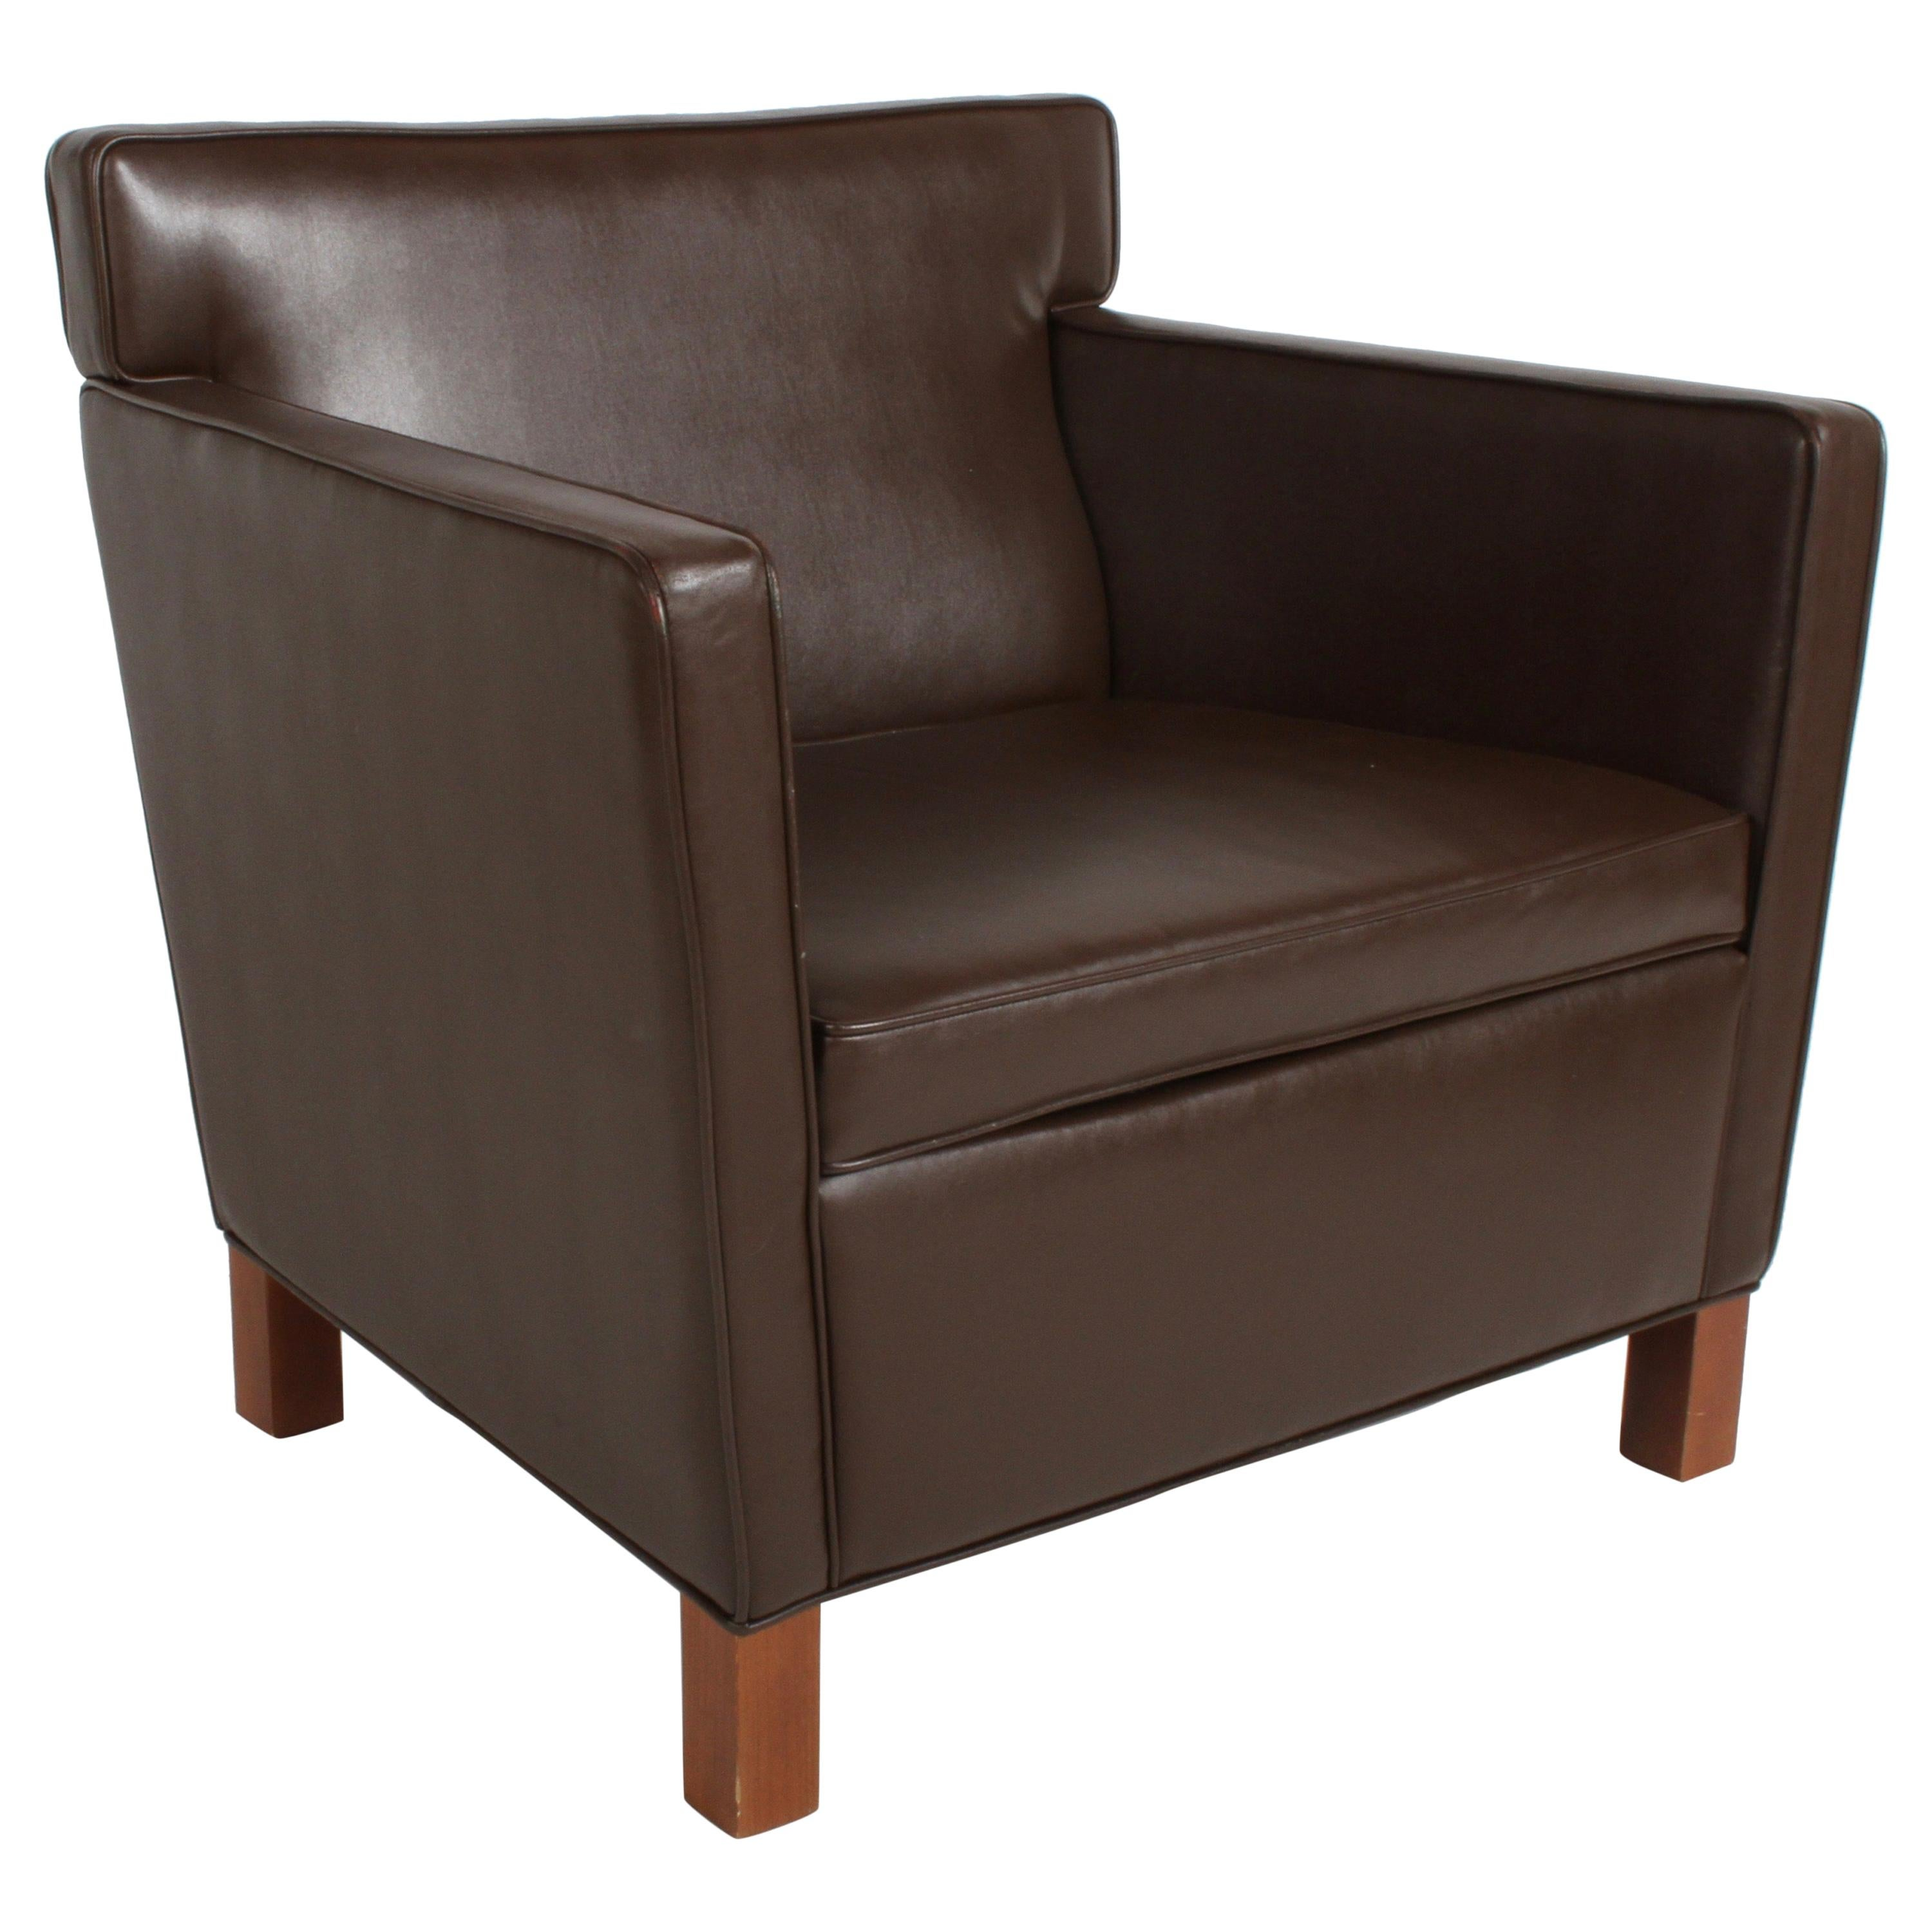 Ludwig Mies van der Rohe Krefeld Brown Leather Lounge Chair for Knoll